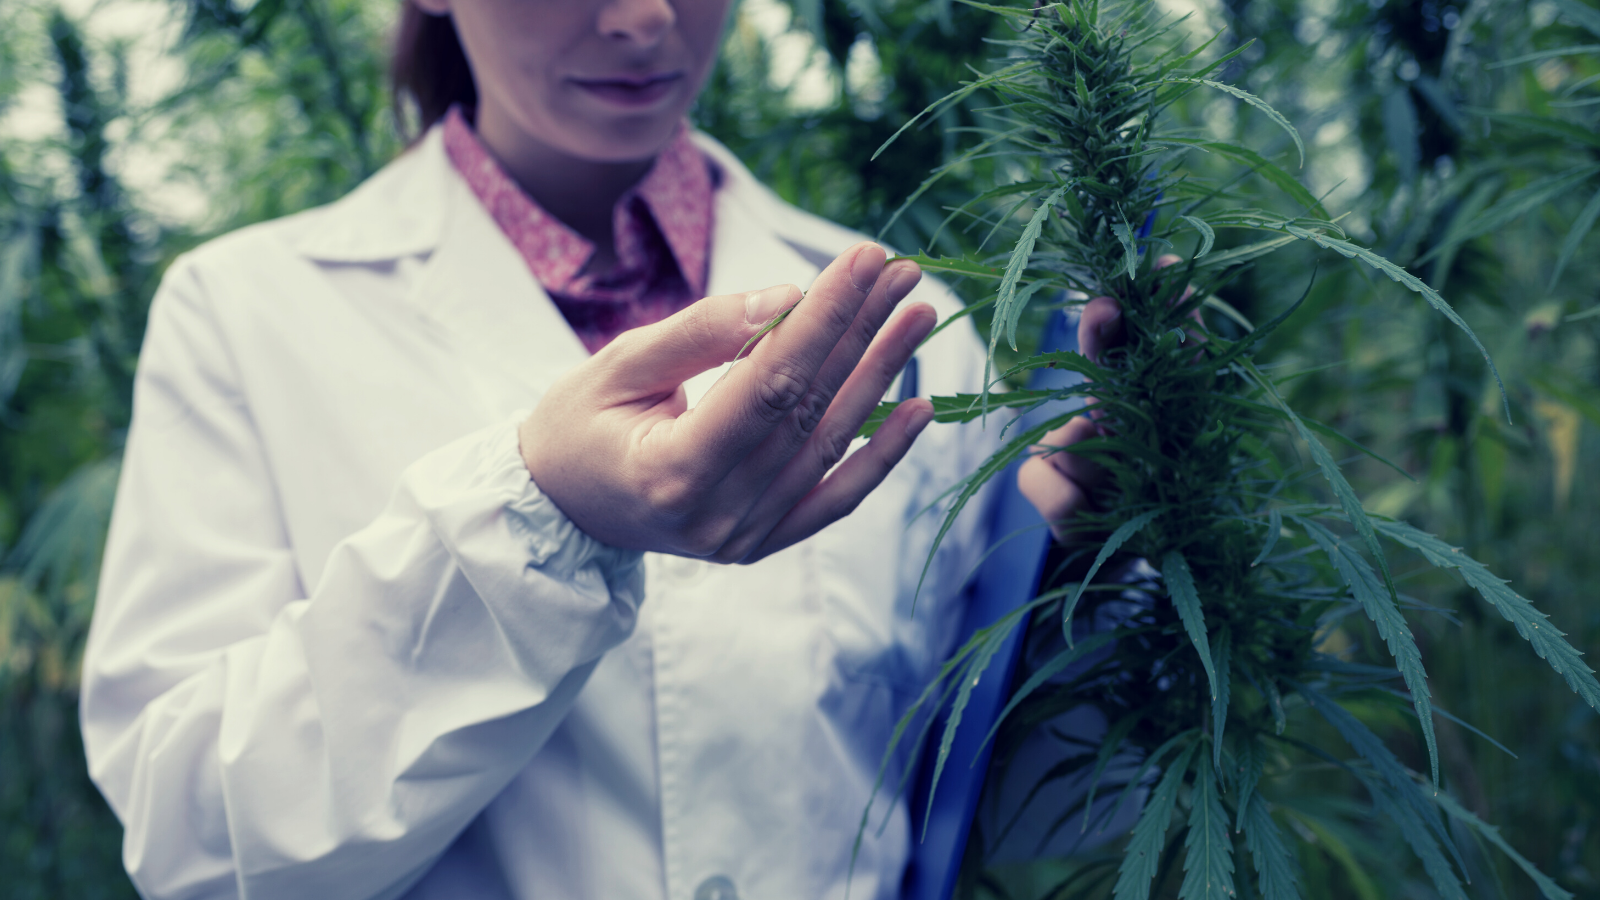 A scientist and researcher inspects cannabis flowers.